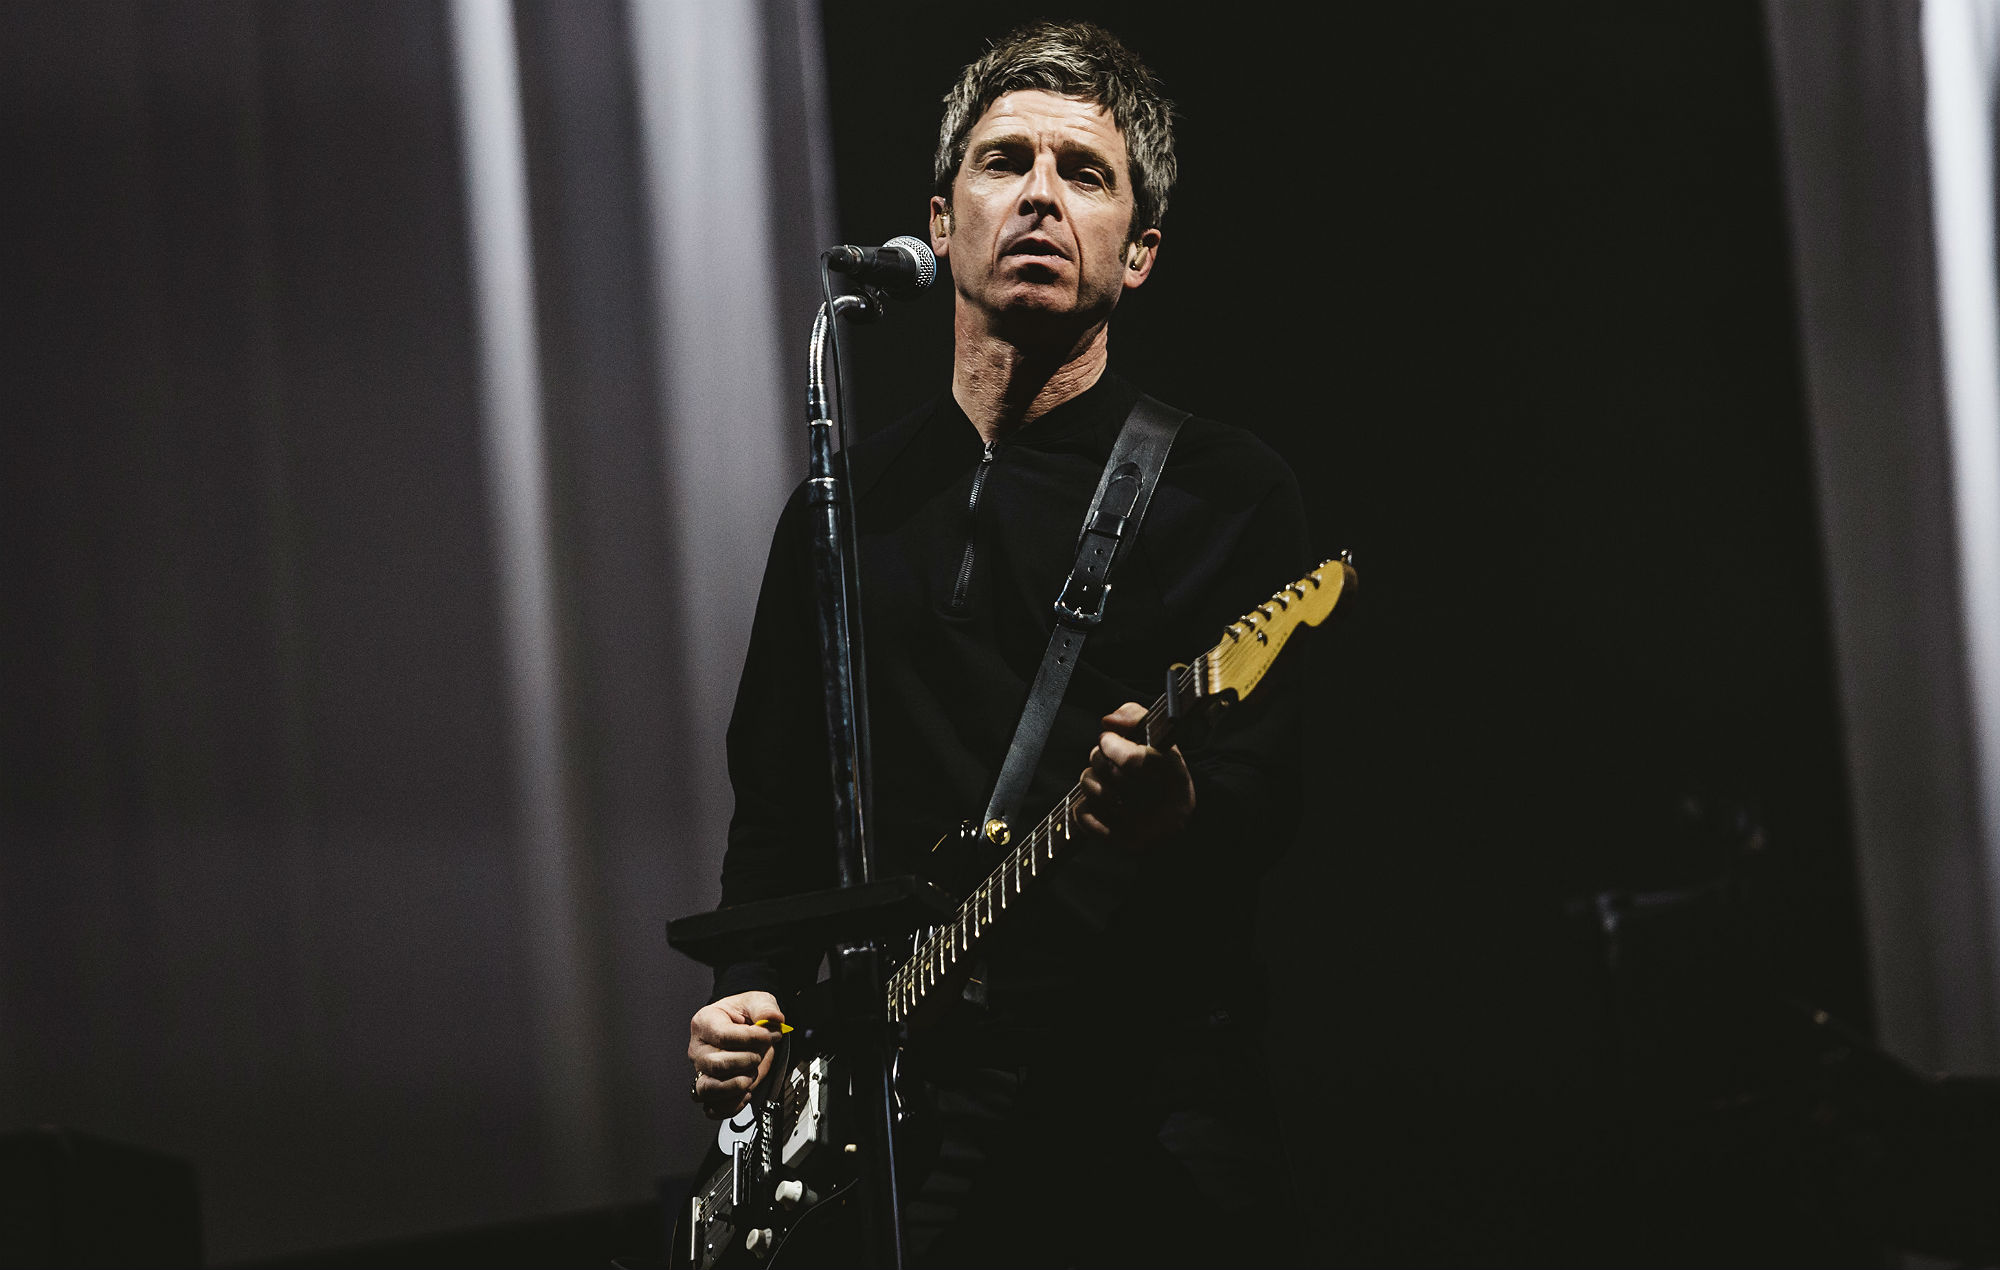 Noel Gallagher's High Flying Birds have announced a huge London gig at Kenwood House for 2020